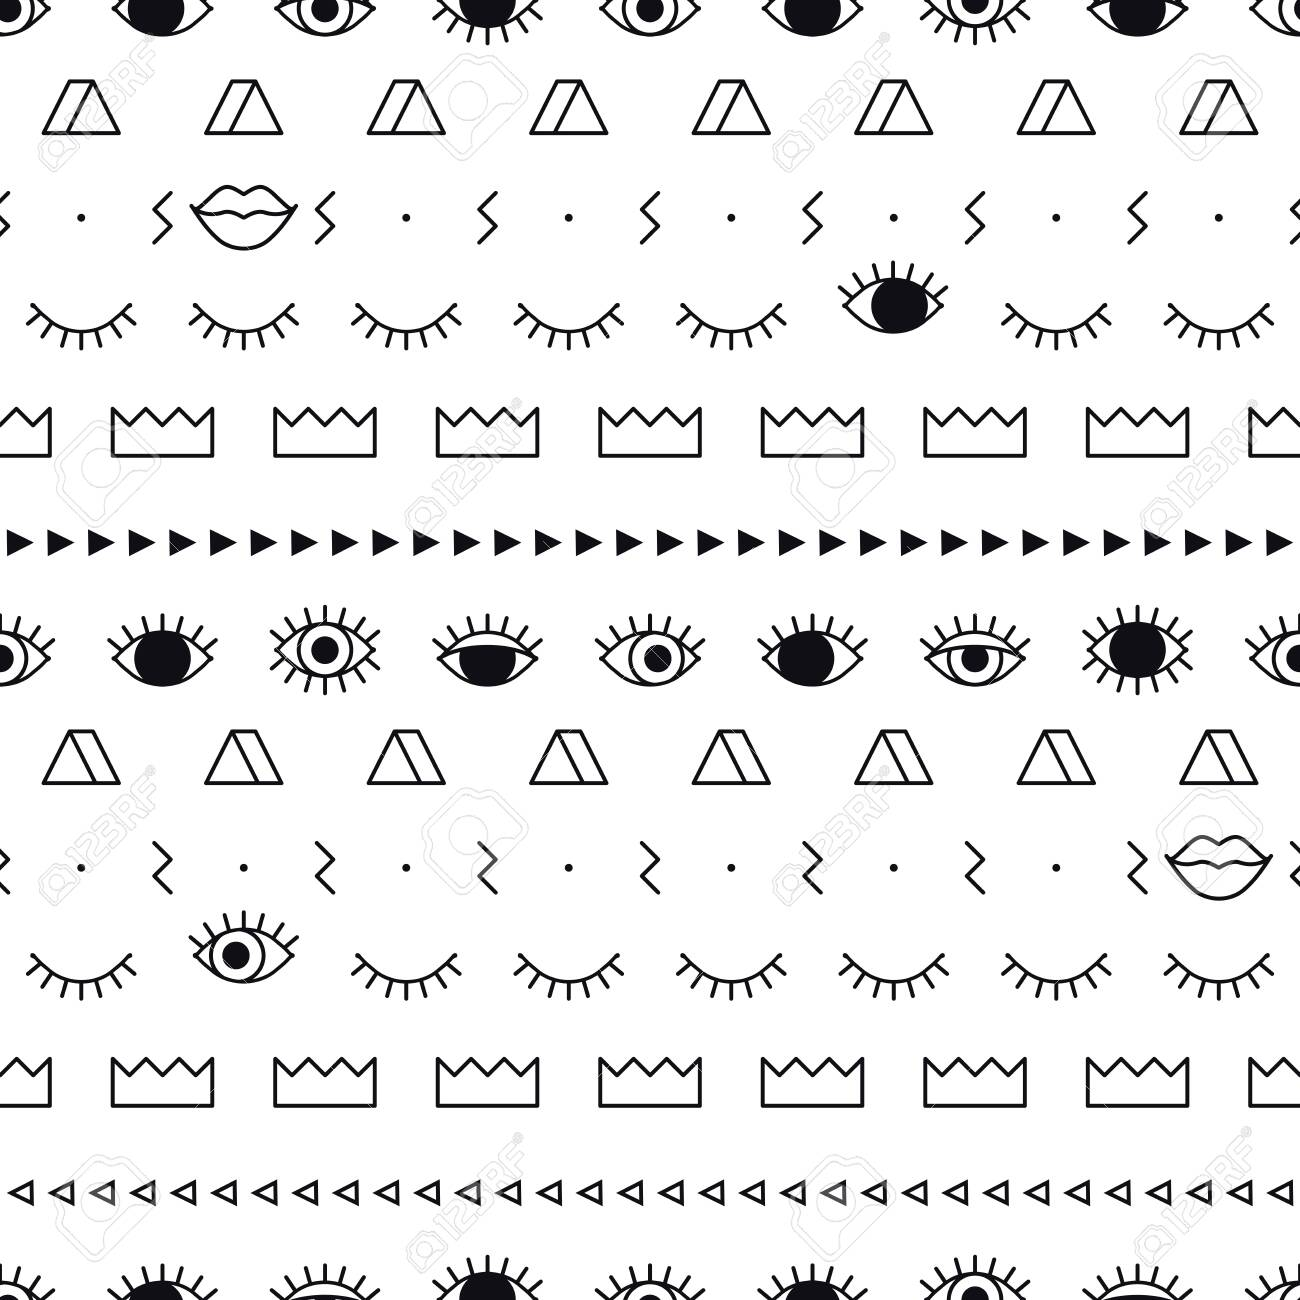 Memphis pattern with psychedelic eyes, lips and geometric shapes